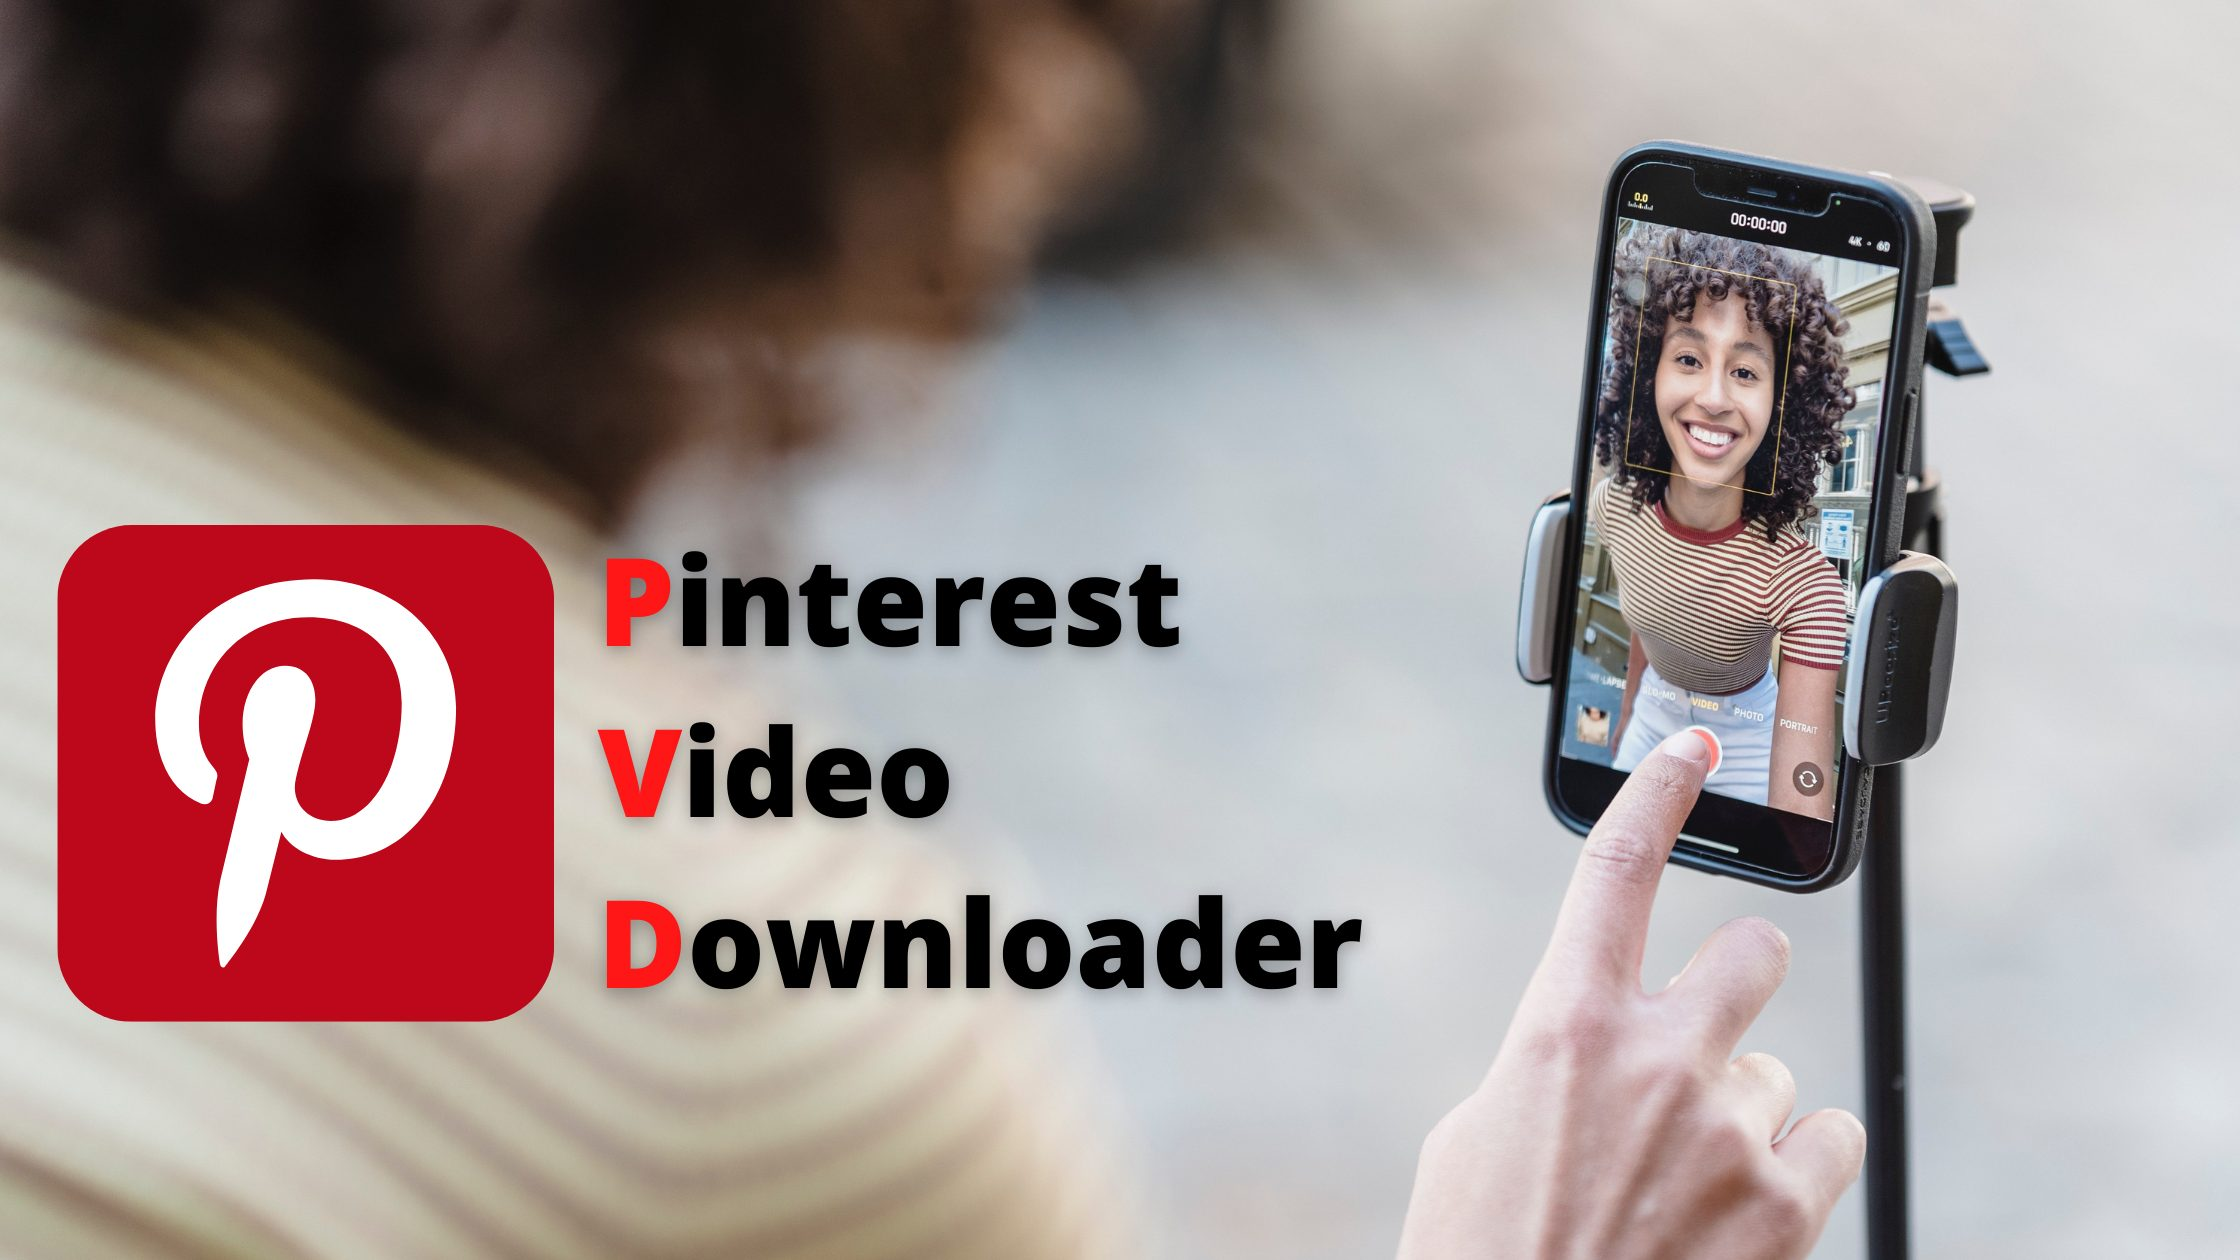 20 Best Pinterest Video Downloader You Must Try In 20